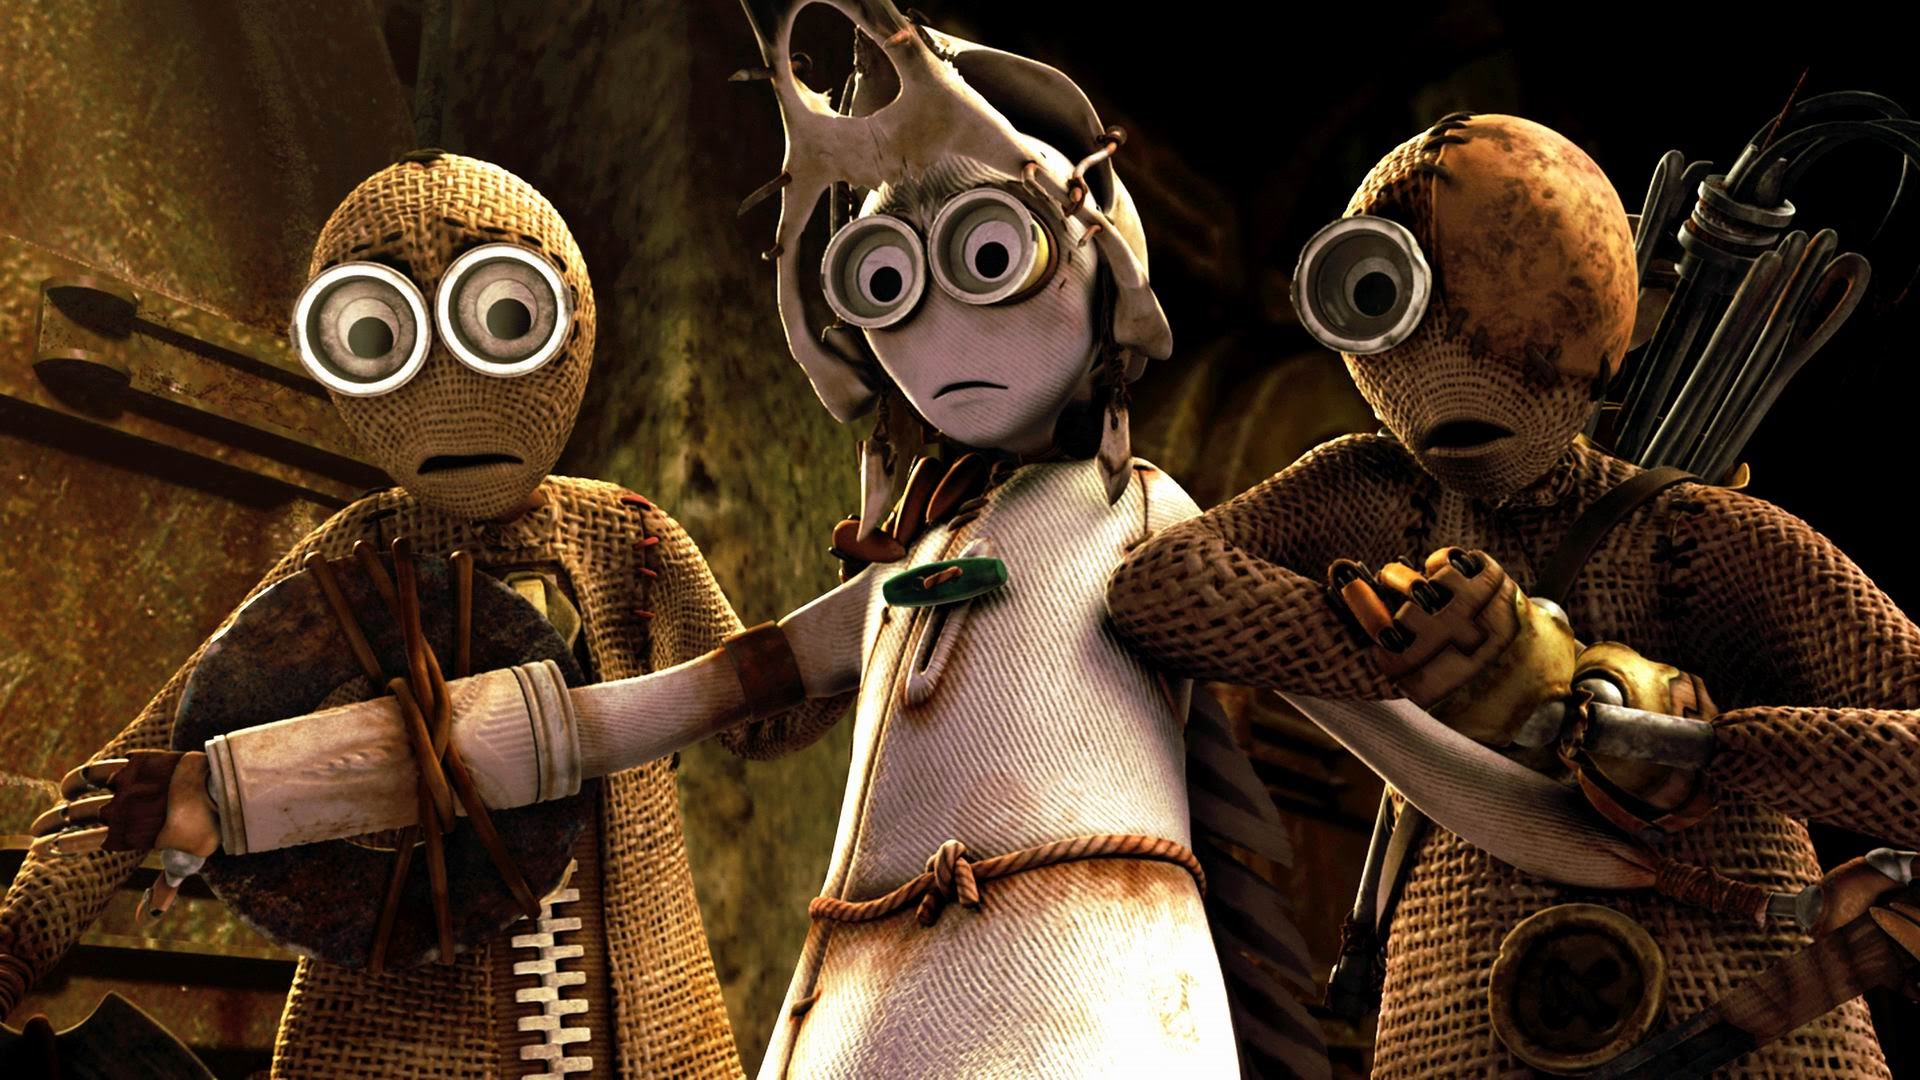 (l to r) 9 (voiced by Elijah Wood), 7 (voiced by Jennifer Connelly) and 5 (voiced by John C. Reilly) in 9 (2009)